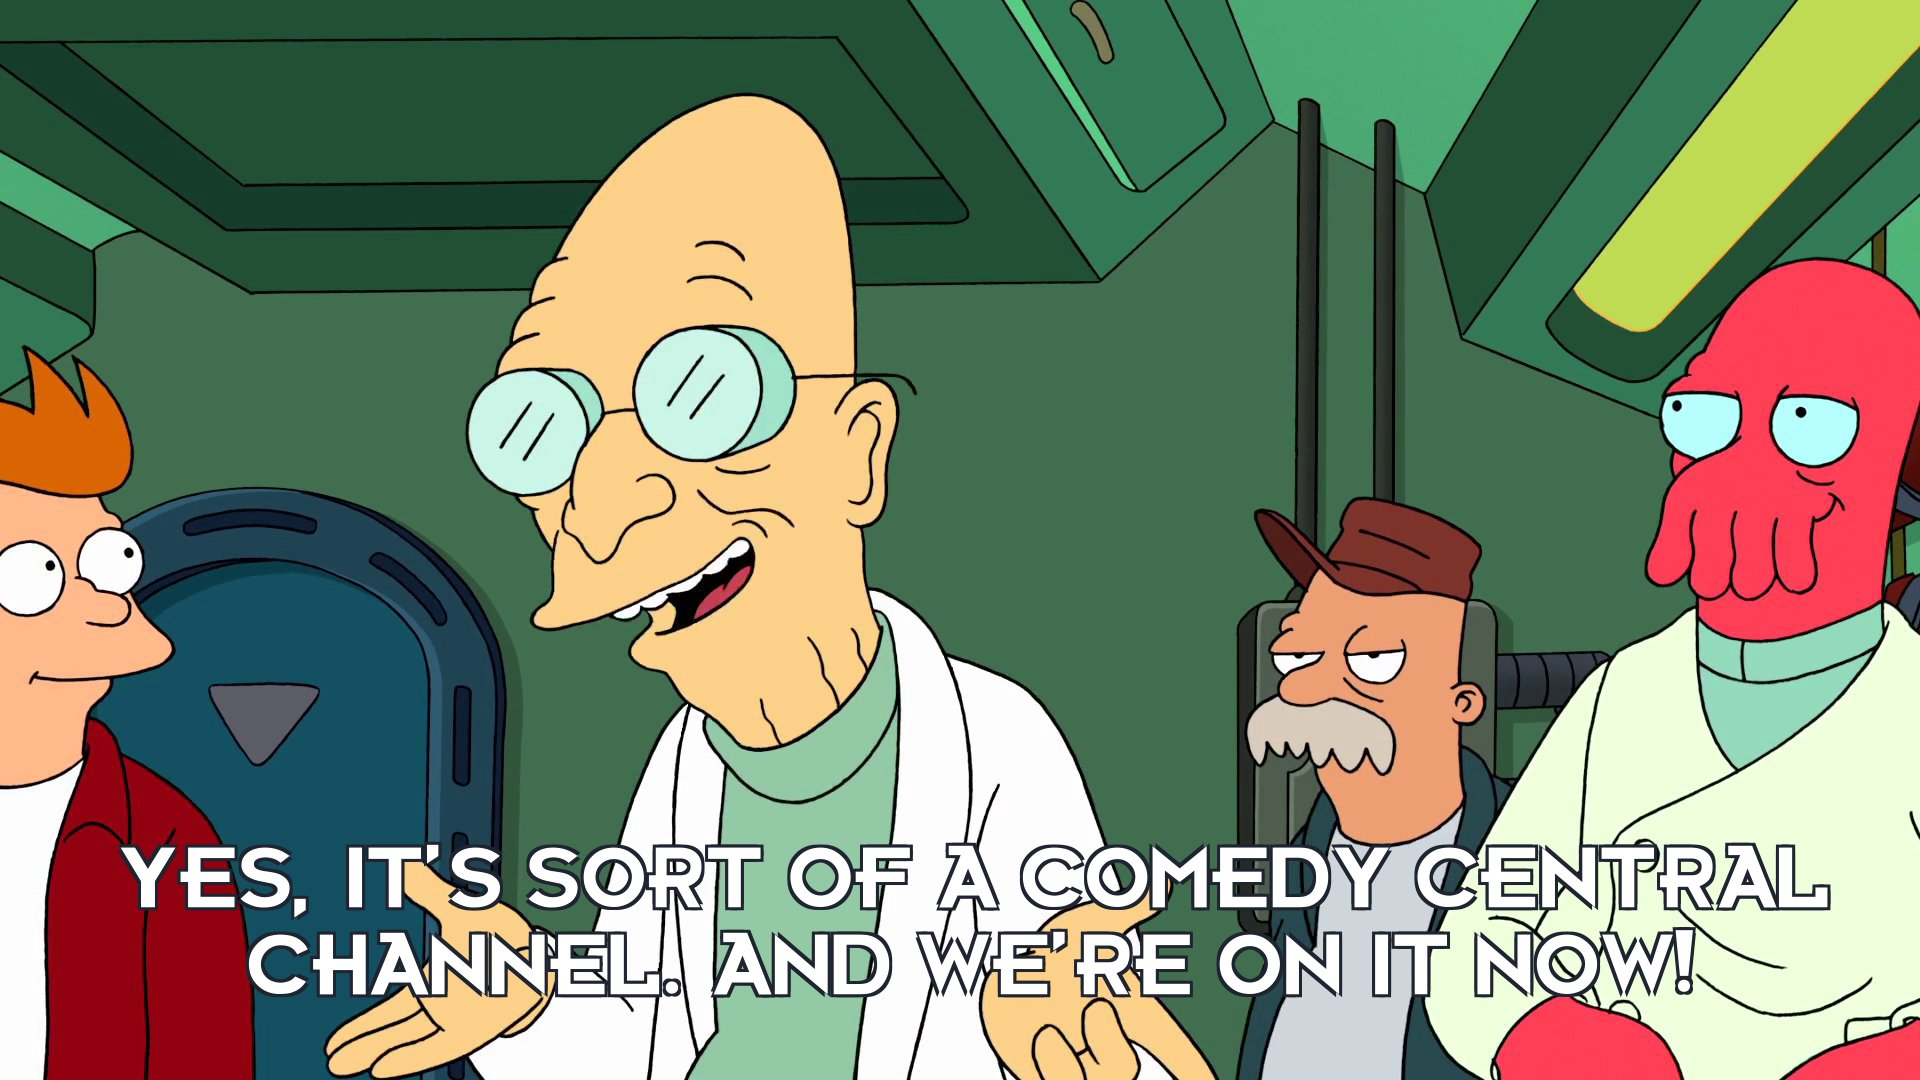 Prof Hubert J Farnsworth: Yes, it's sort of a comedy central channel. And we're on it now!